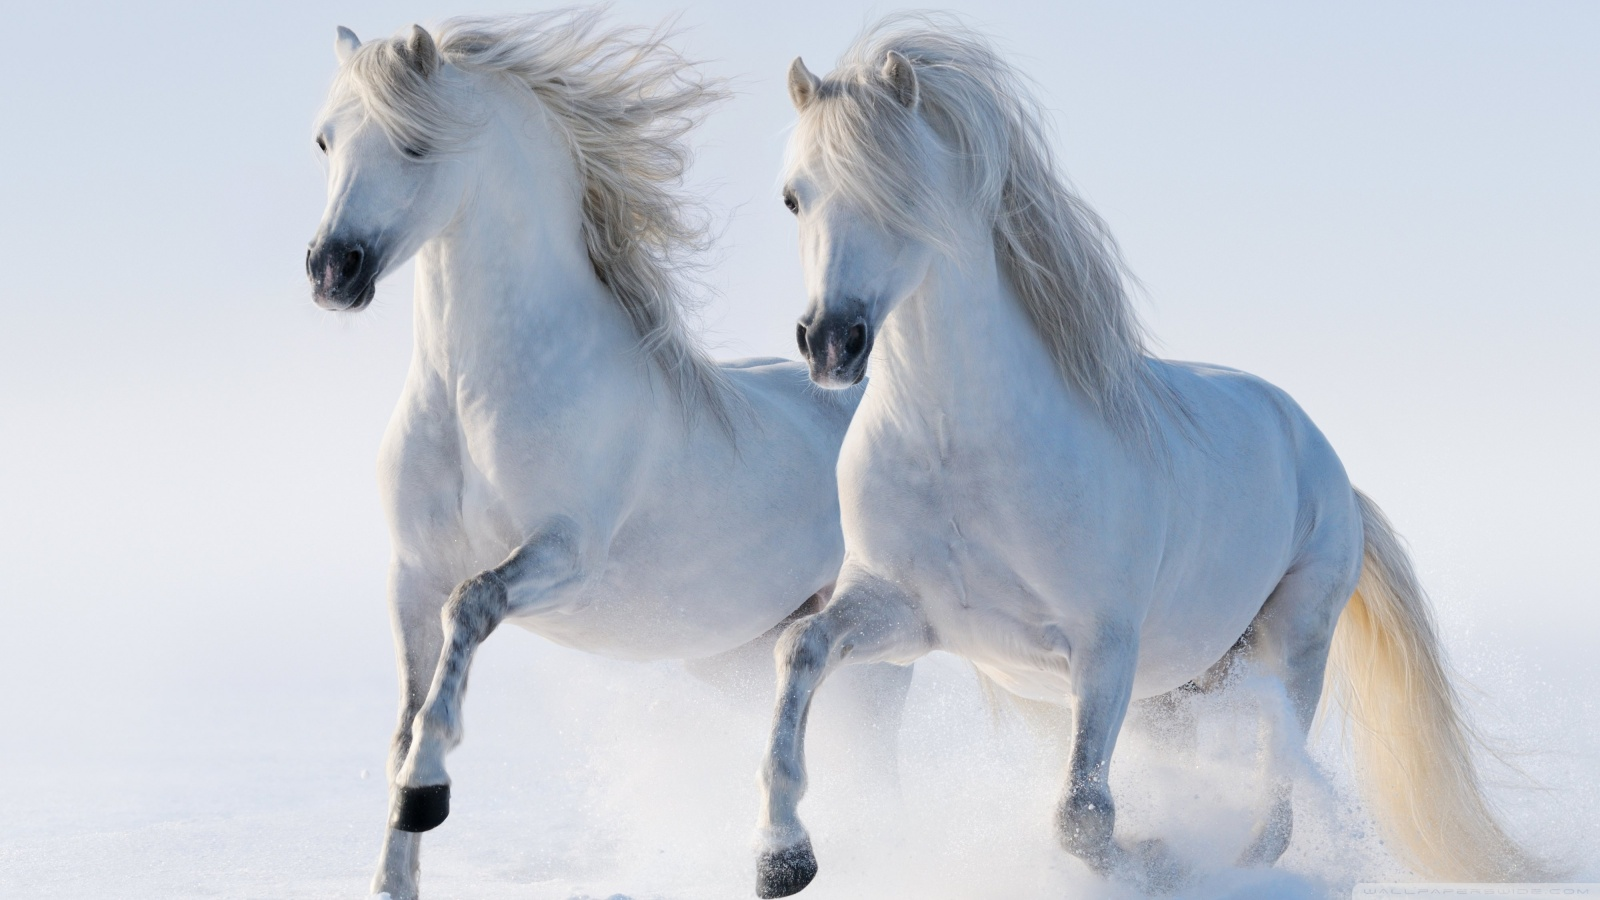 White Horses in Snow